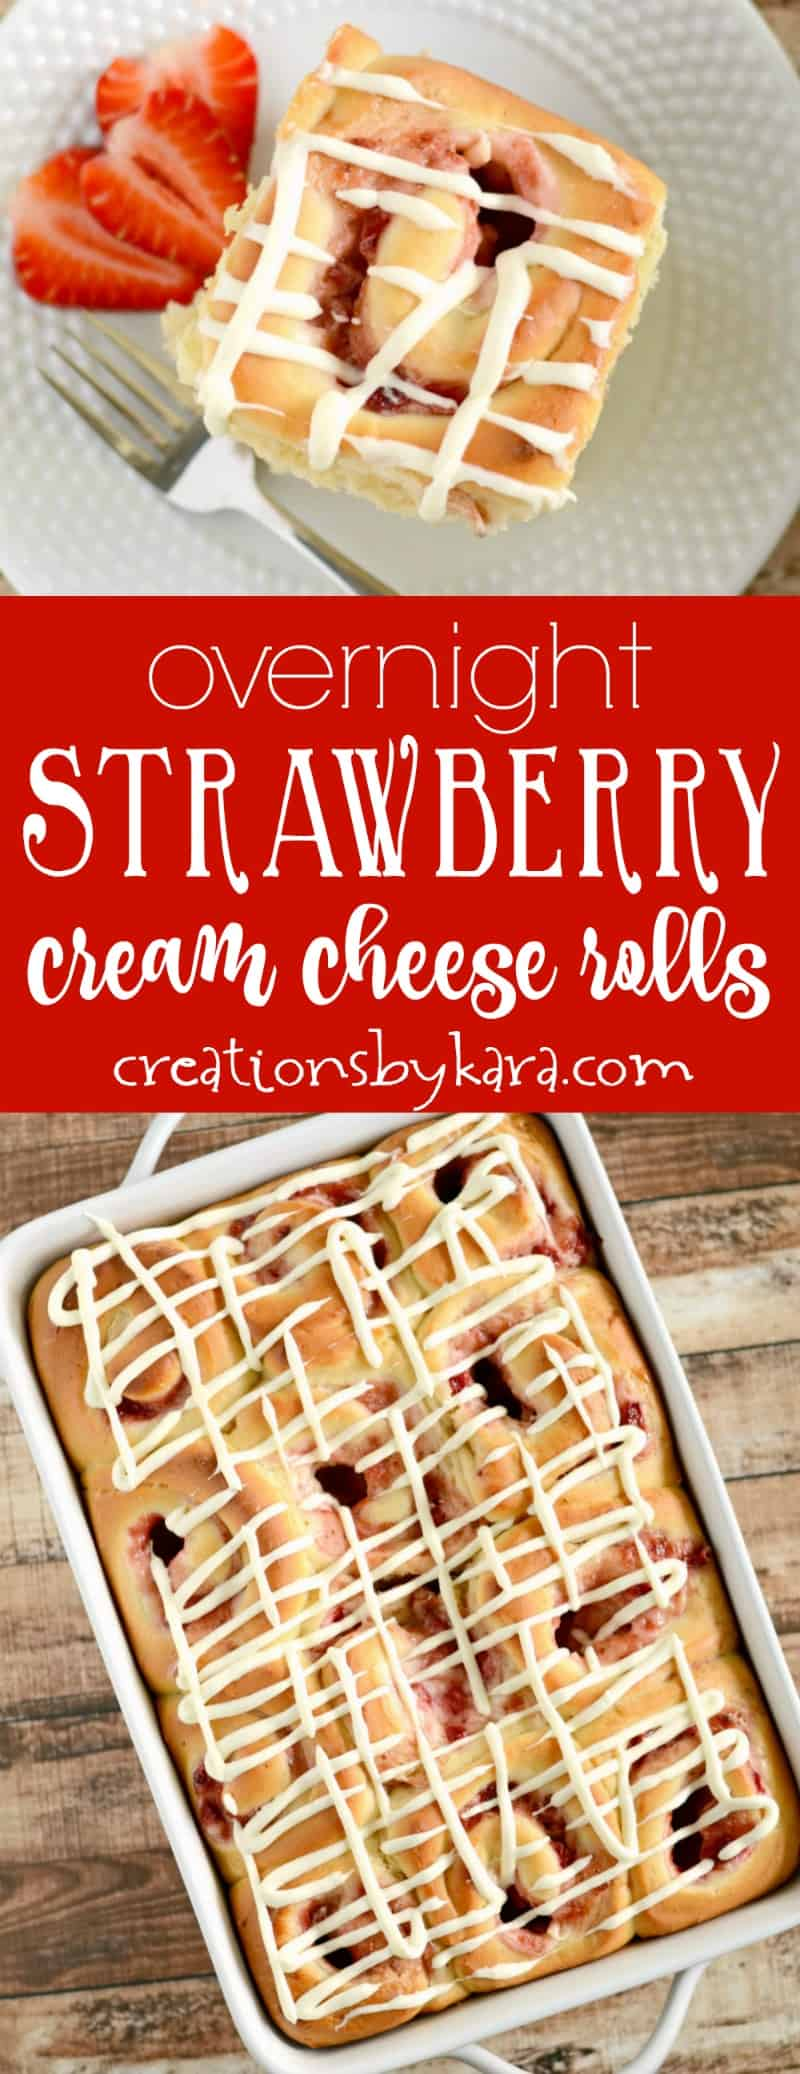 Overnight Strawberry Cream Cheese Rolls - loaded with strawberries and cream cheese filling, these rolls are incredible! #creamcheese #sweetrolls #strawberries